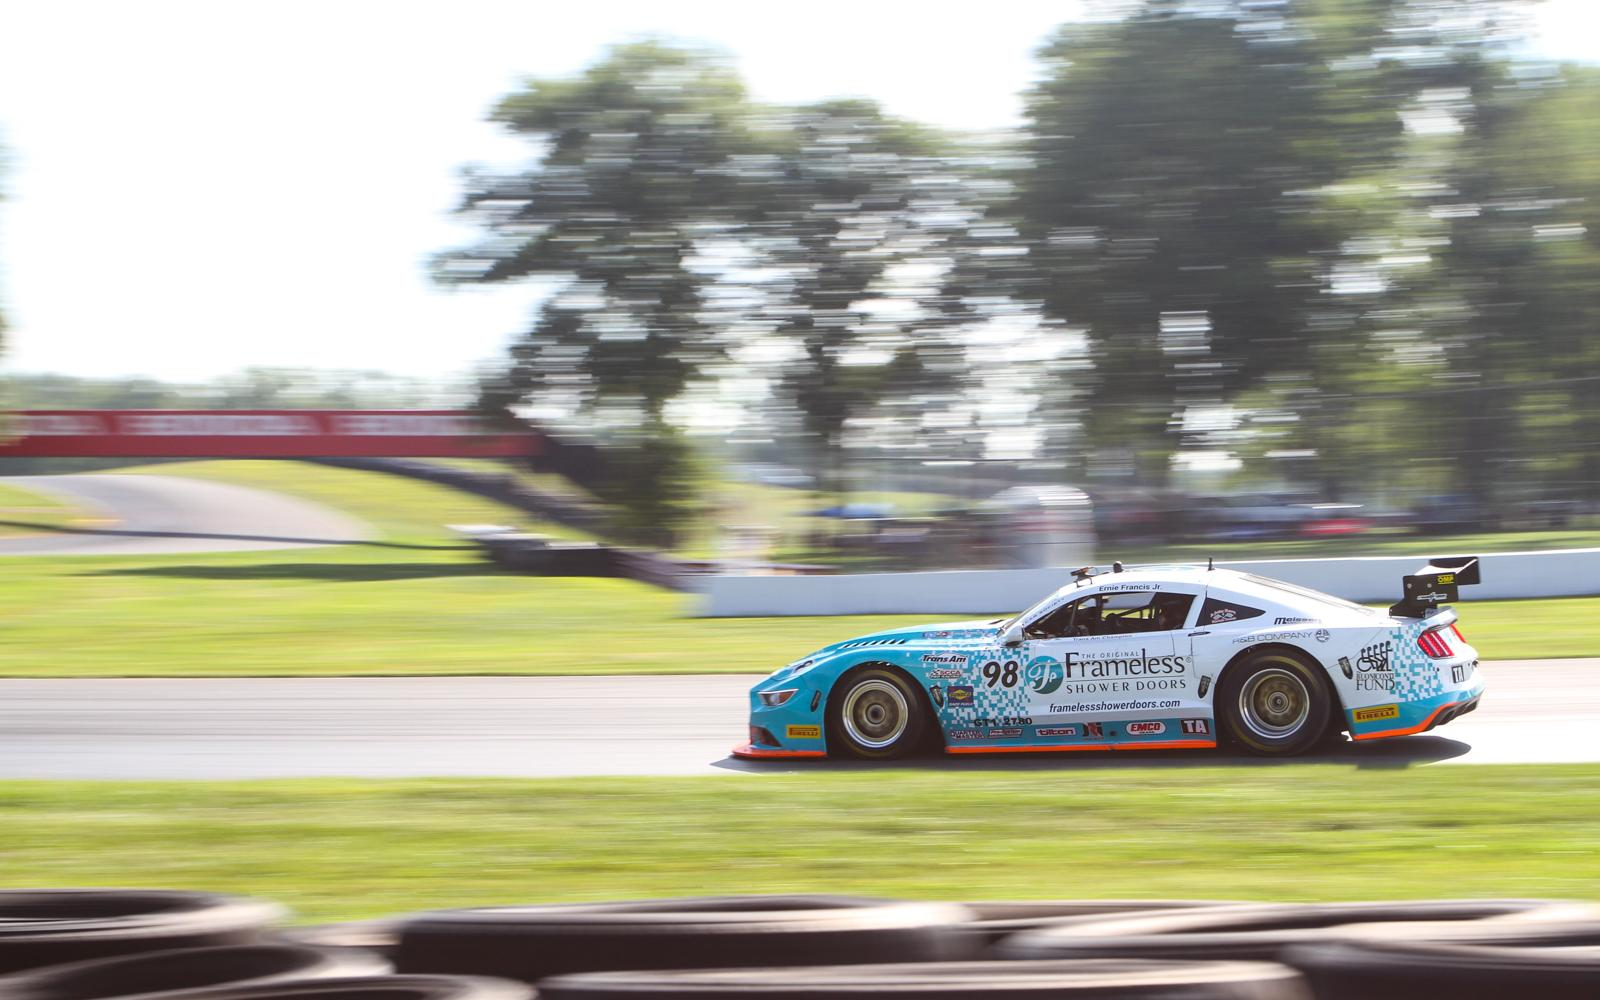 Francis Wins FirstEnergy Trans Am 100 at Mid-Ohio